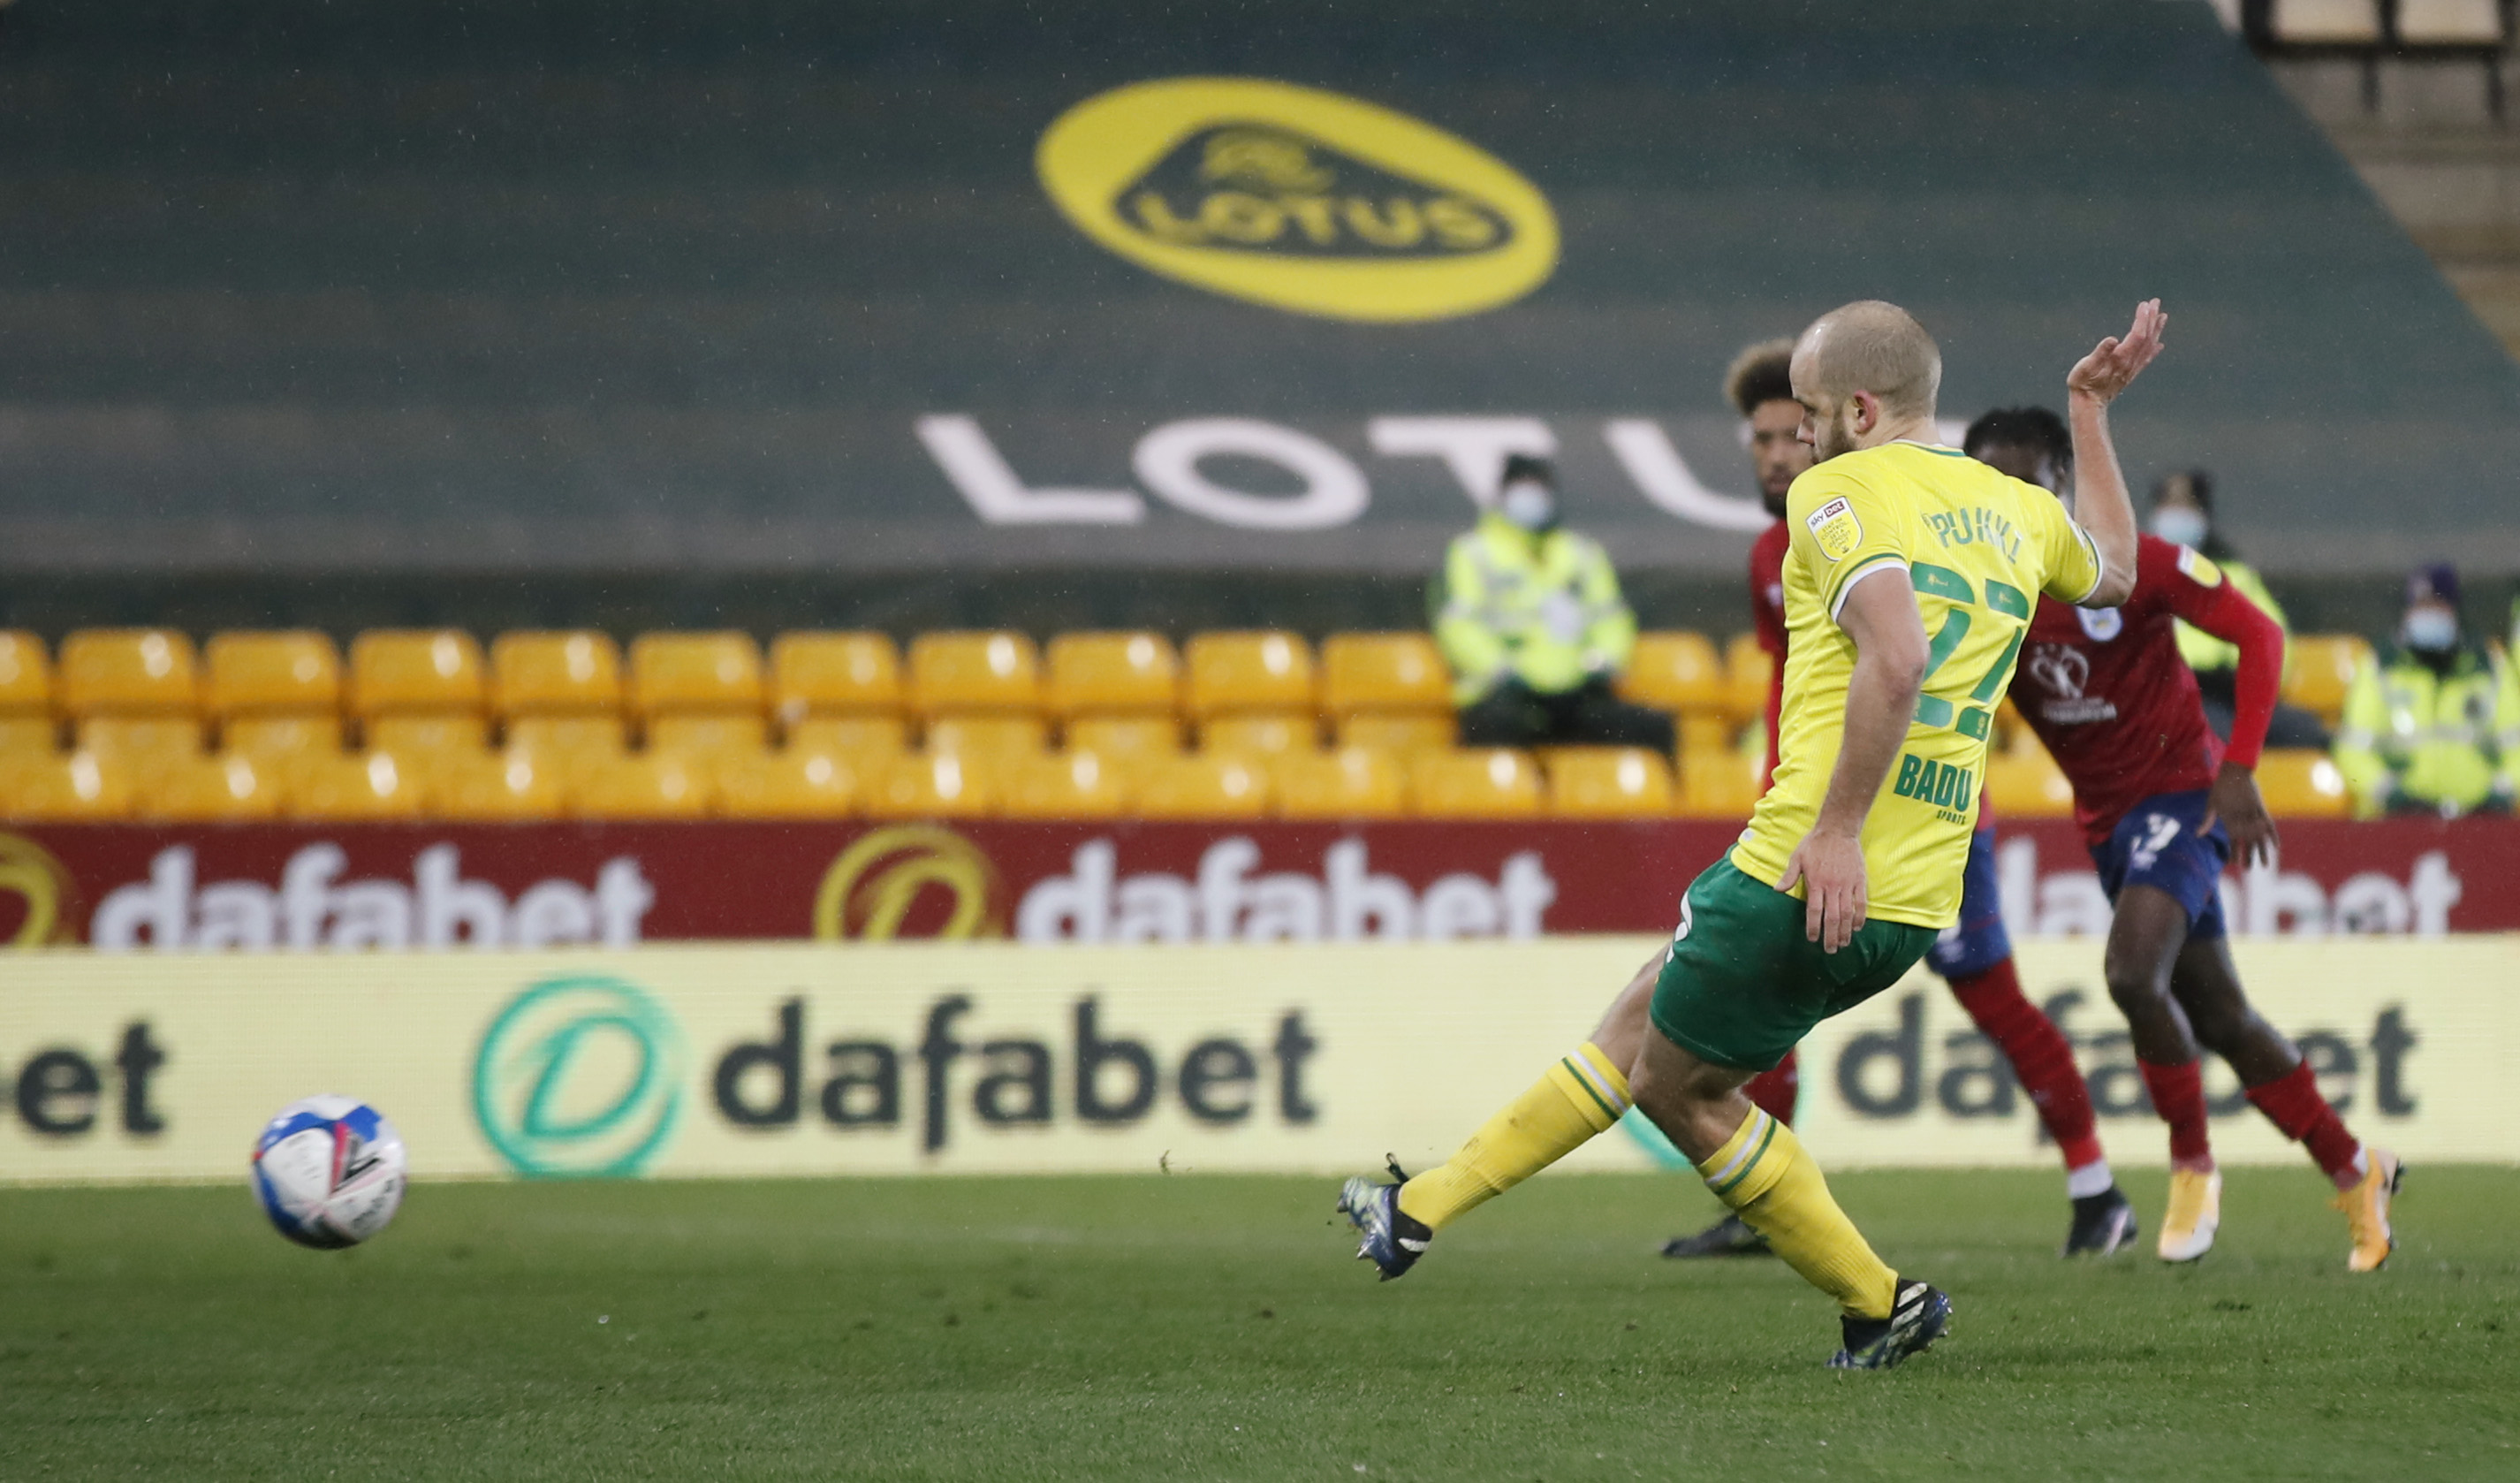 Soccer Football - Championship - Norwich City v Huddersfield Town - Carrow Road, Norwich, Britain - April 6, 2021 Norwich City's Teemu Pukki scores their sixth goal Action Images/Matthew Childs